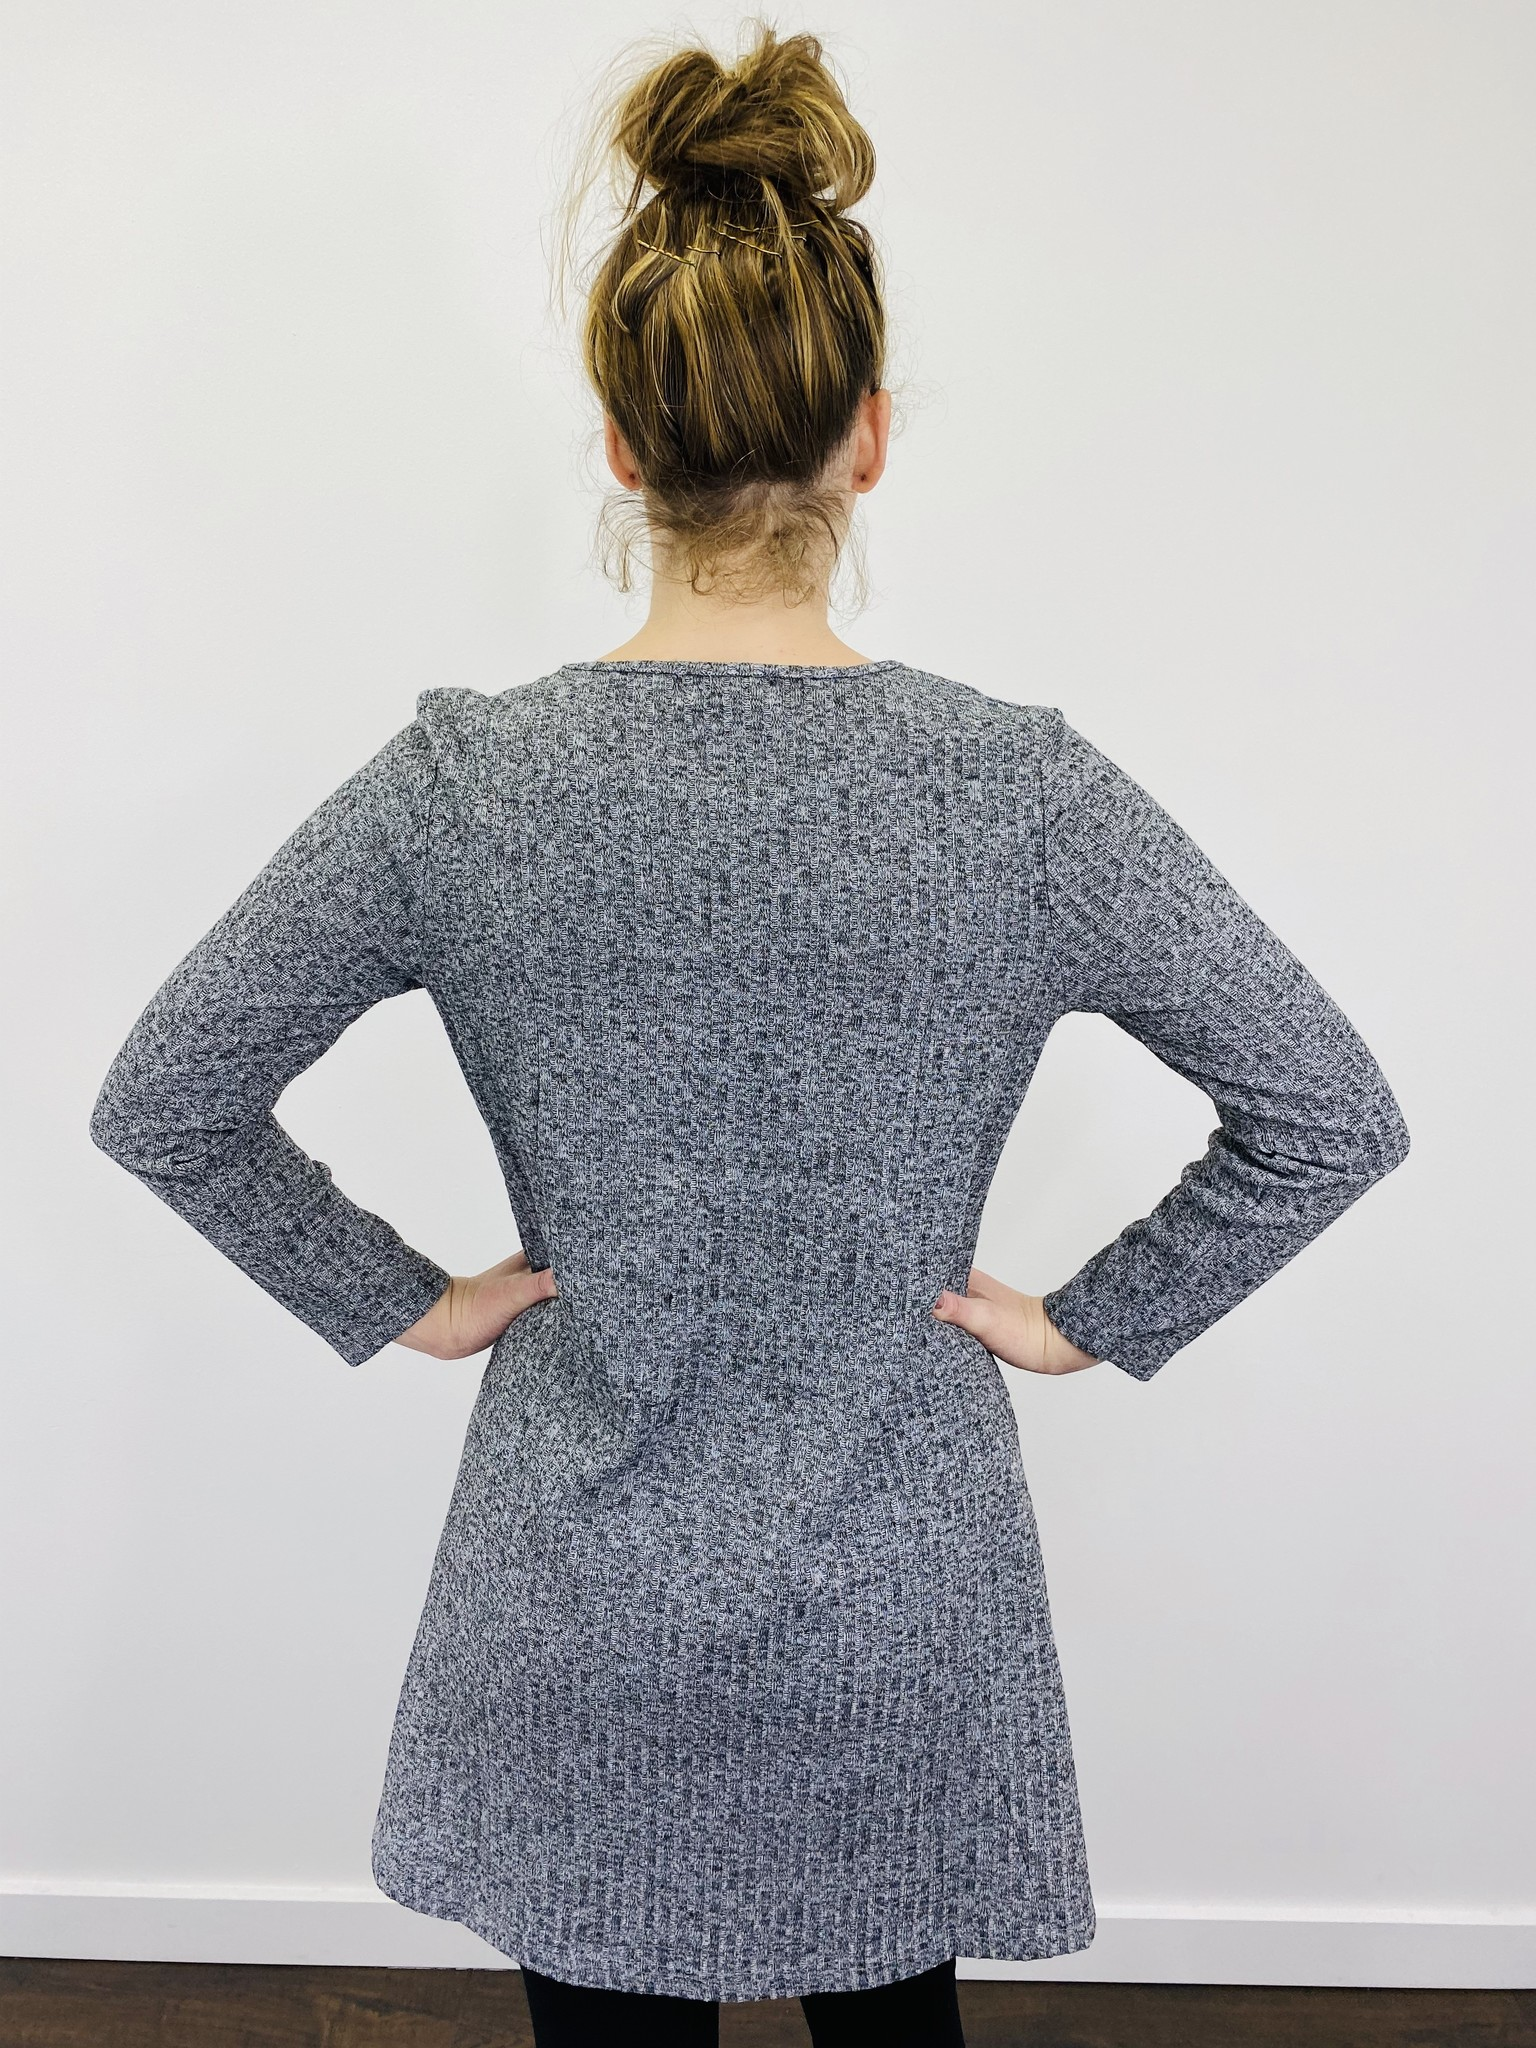 Papillon Ribbed A-Line Dress in Heathered Grey